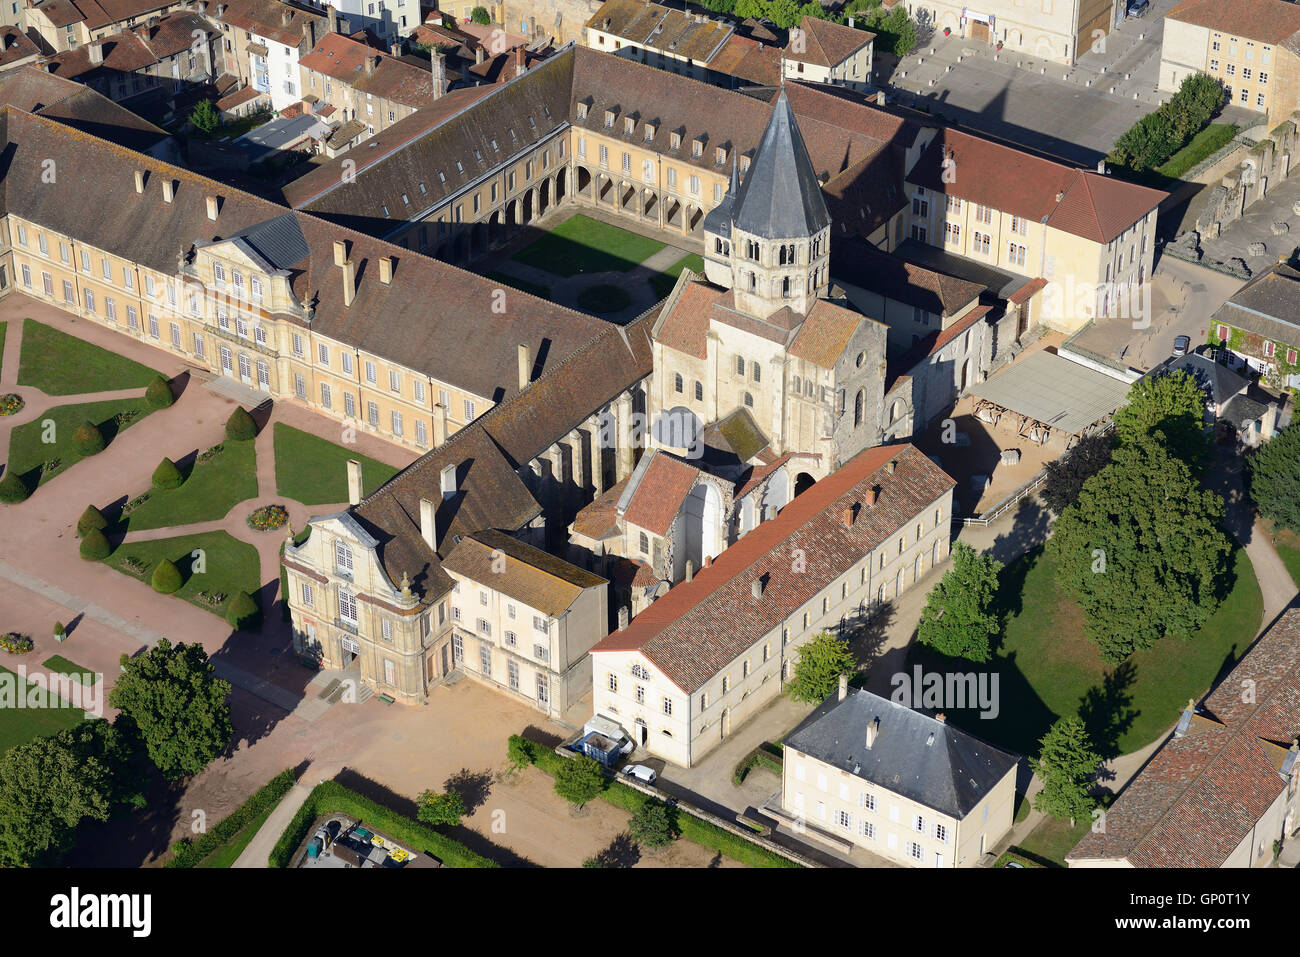 CLUNY ABBEY (aerial view). Saone-et-Loire, Burgundy, France. - Stock Image